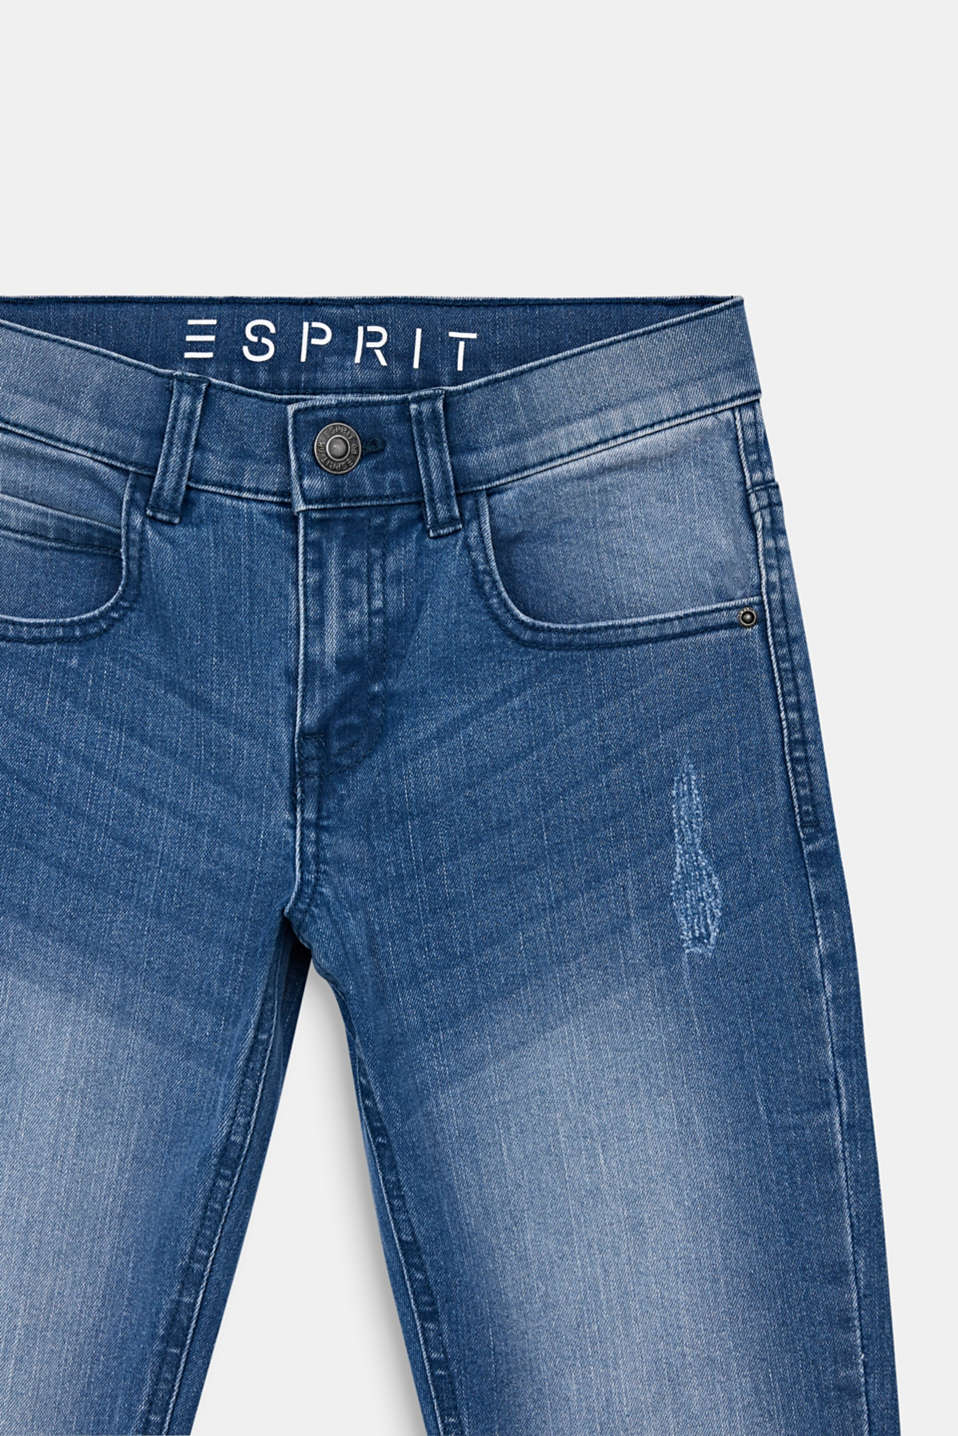 Jeans in a vintage look with an adjustable waistband, LCLIGHT INDIGO D, detail image number 2